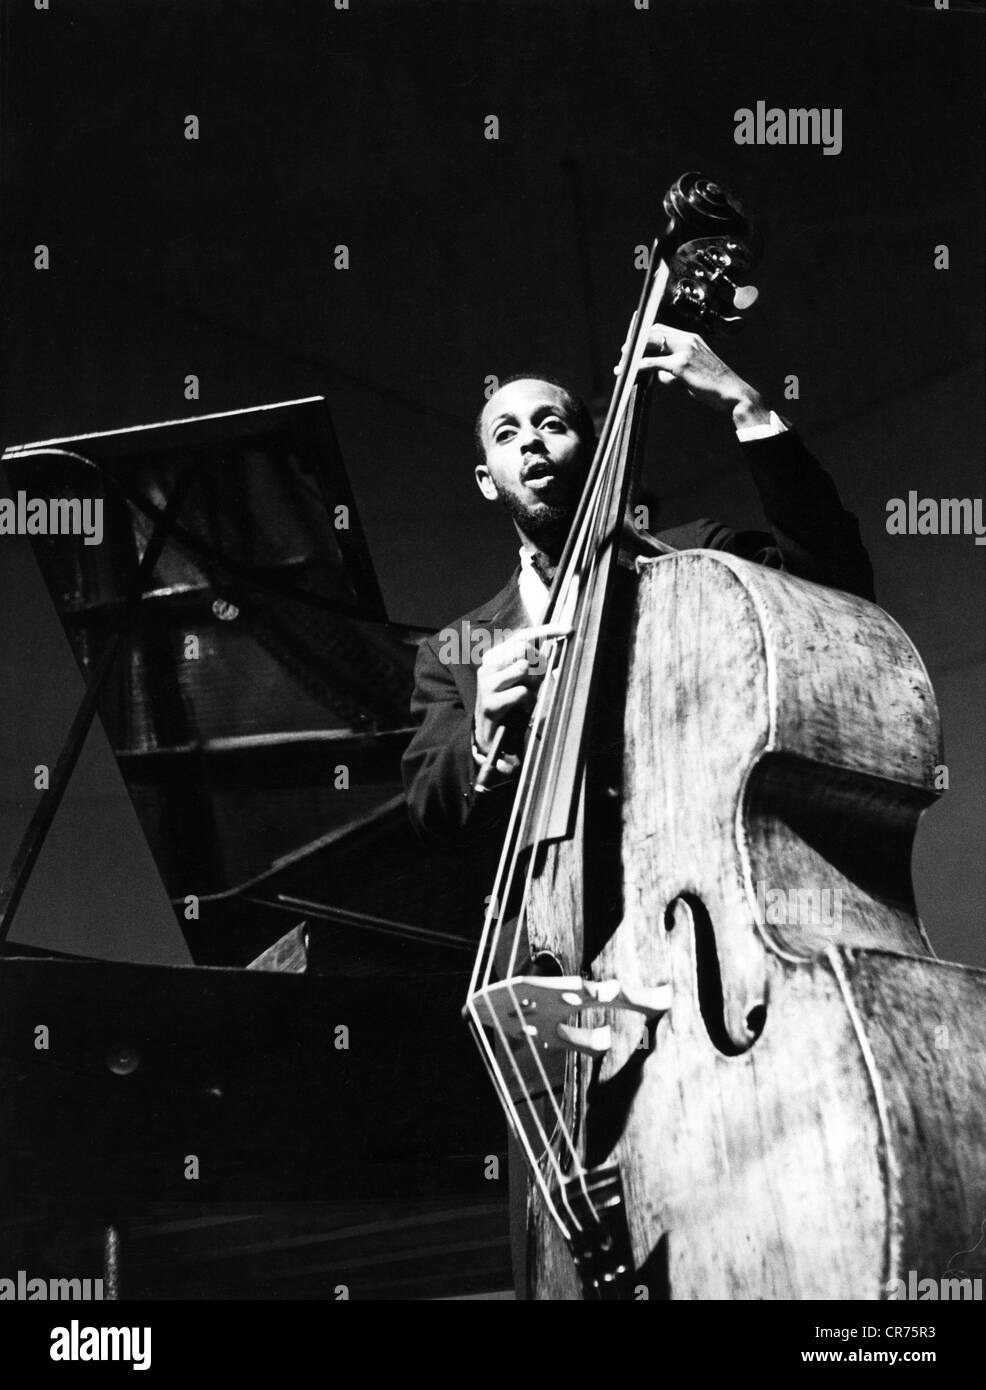 Modern Jazz Quartett, the, American jazz band, member: Percy Hearth, playing double bass, 1955, Additional-Rights Stock Photo